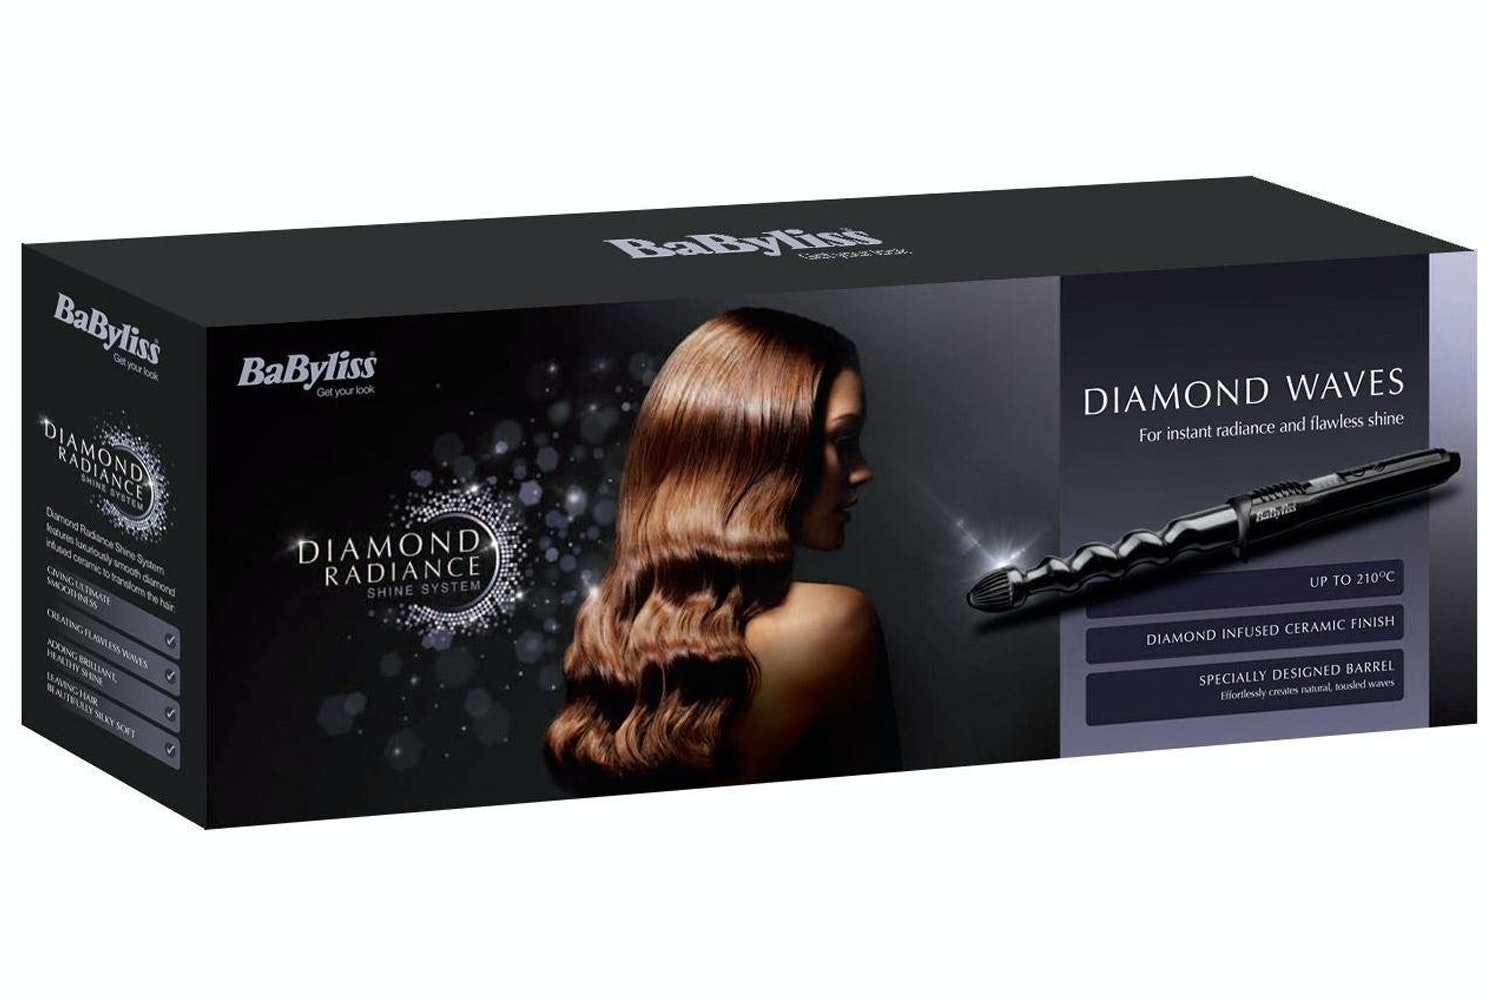 Babyliss Diamond Radiance Curling Wand